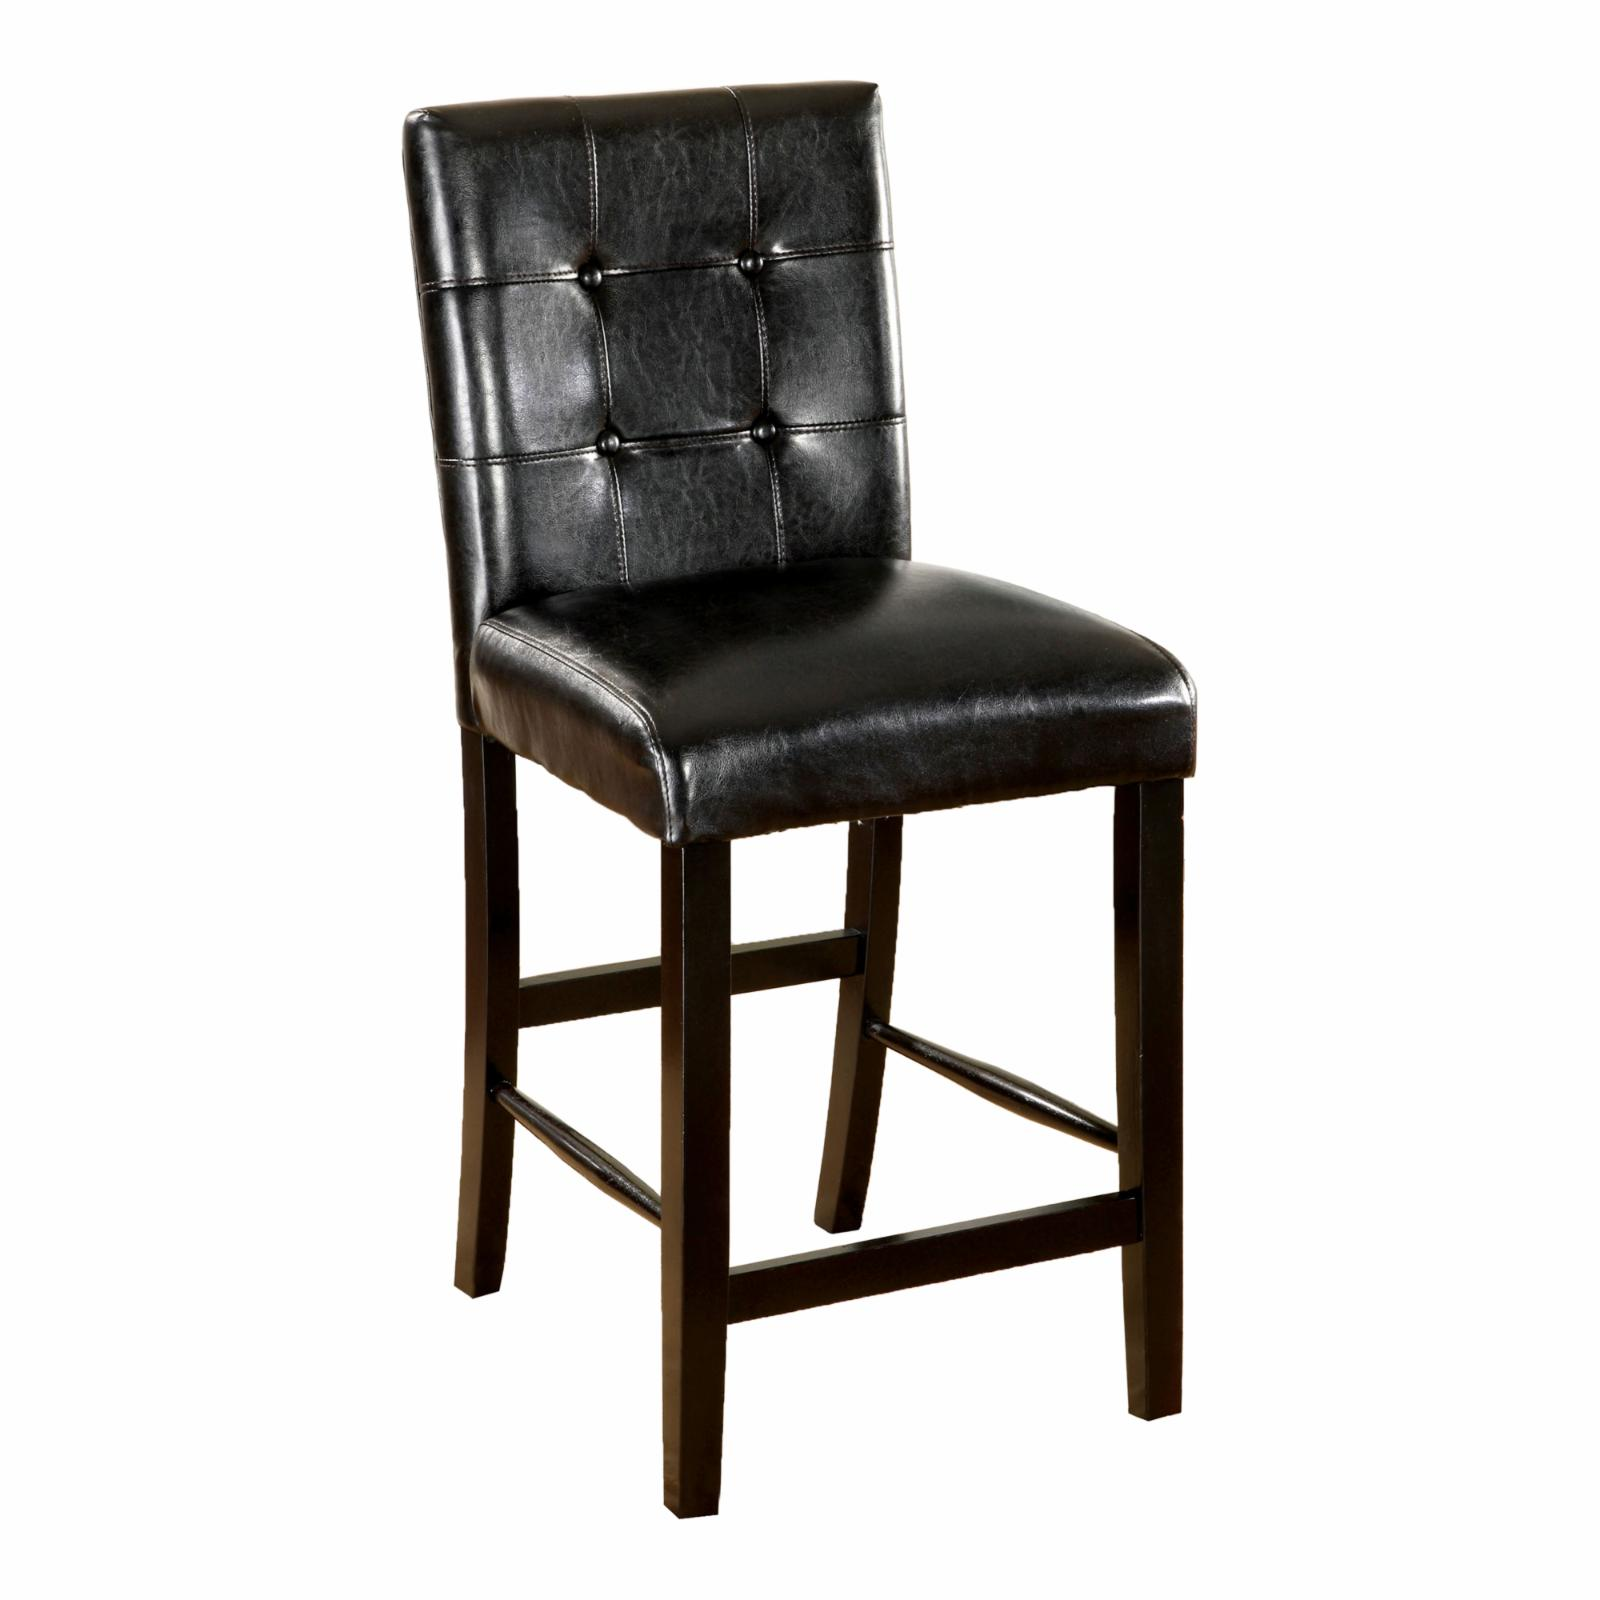 Furniture of America Laelius Counter Height Chair - IDF-3188BK-PC